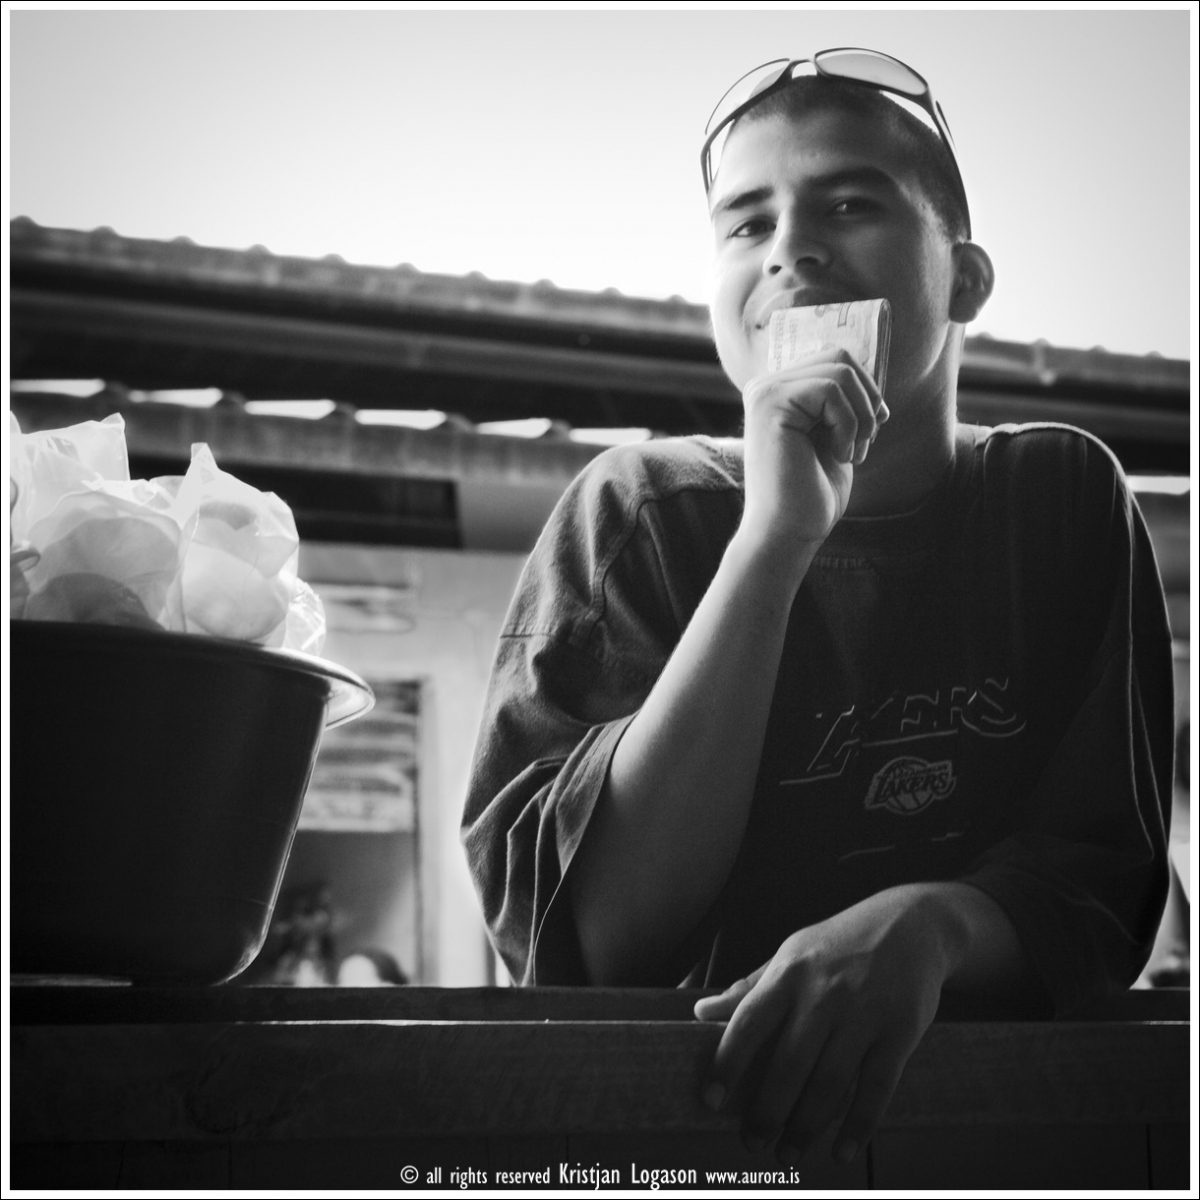 Young orphan Street vendor in Yoro, Honduras selling snack